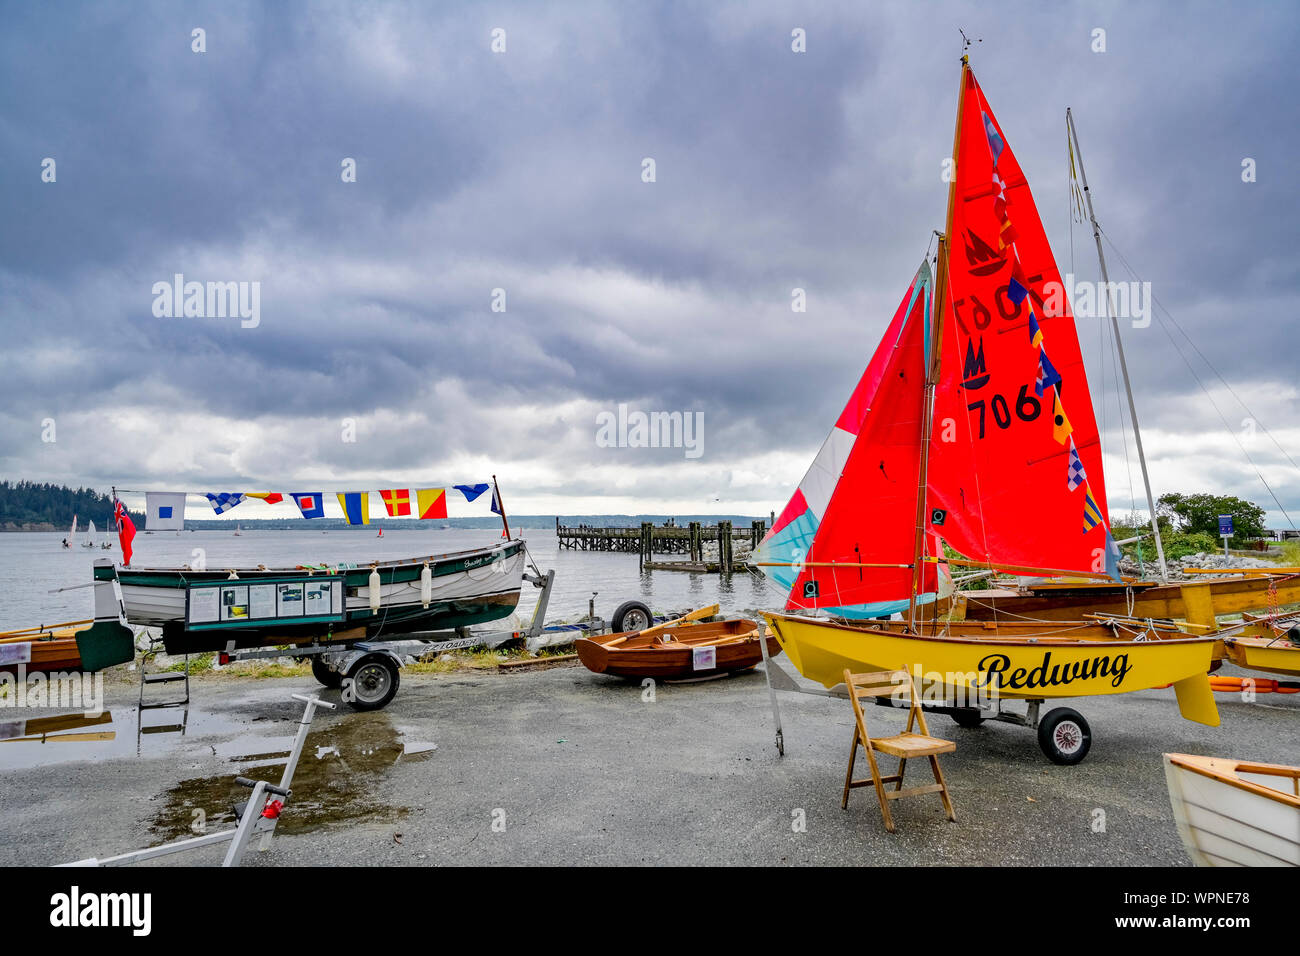 Hollyburn Sailing Club, Wooden Boat Show, Ambleside, North Vancouver, British Columbia, Canada Stock Photo